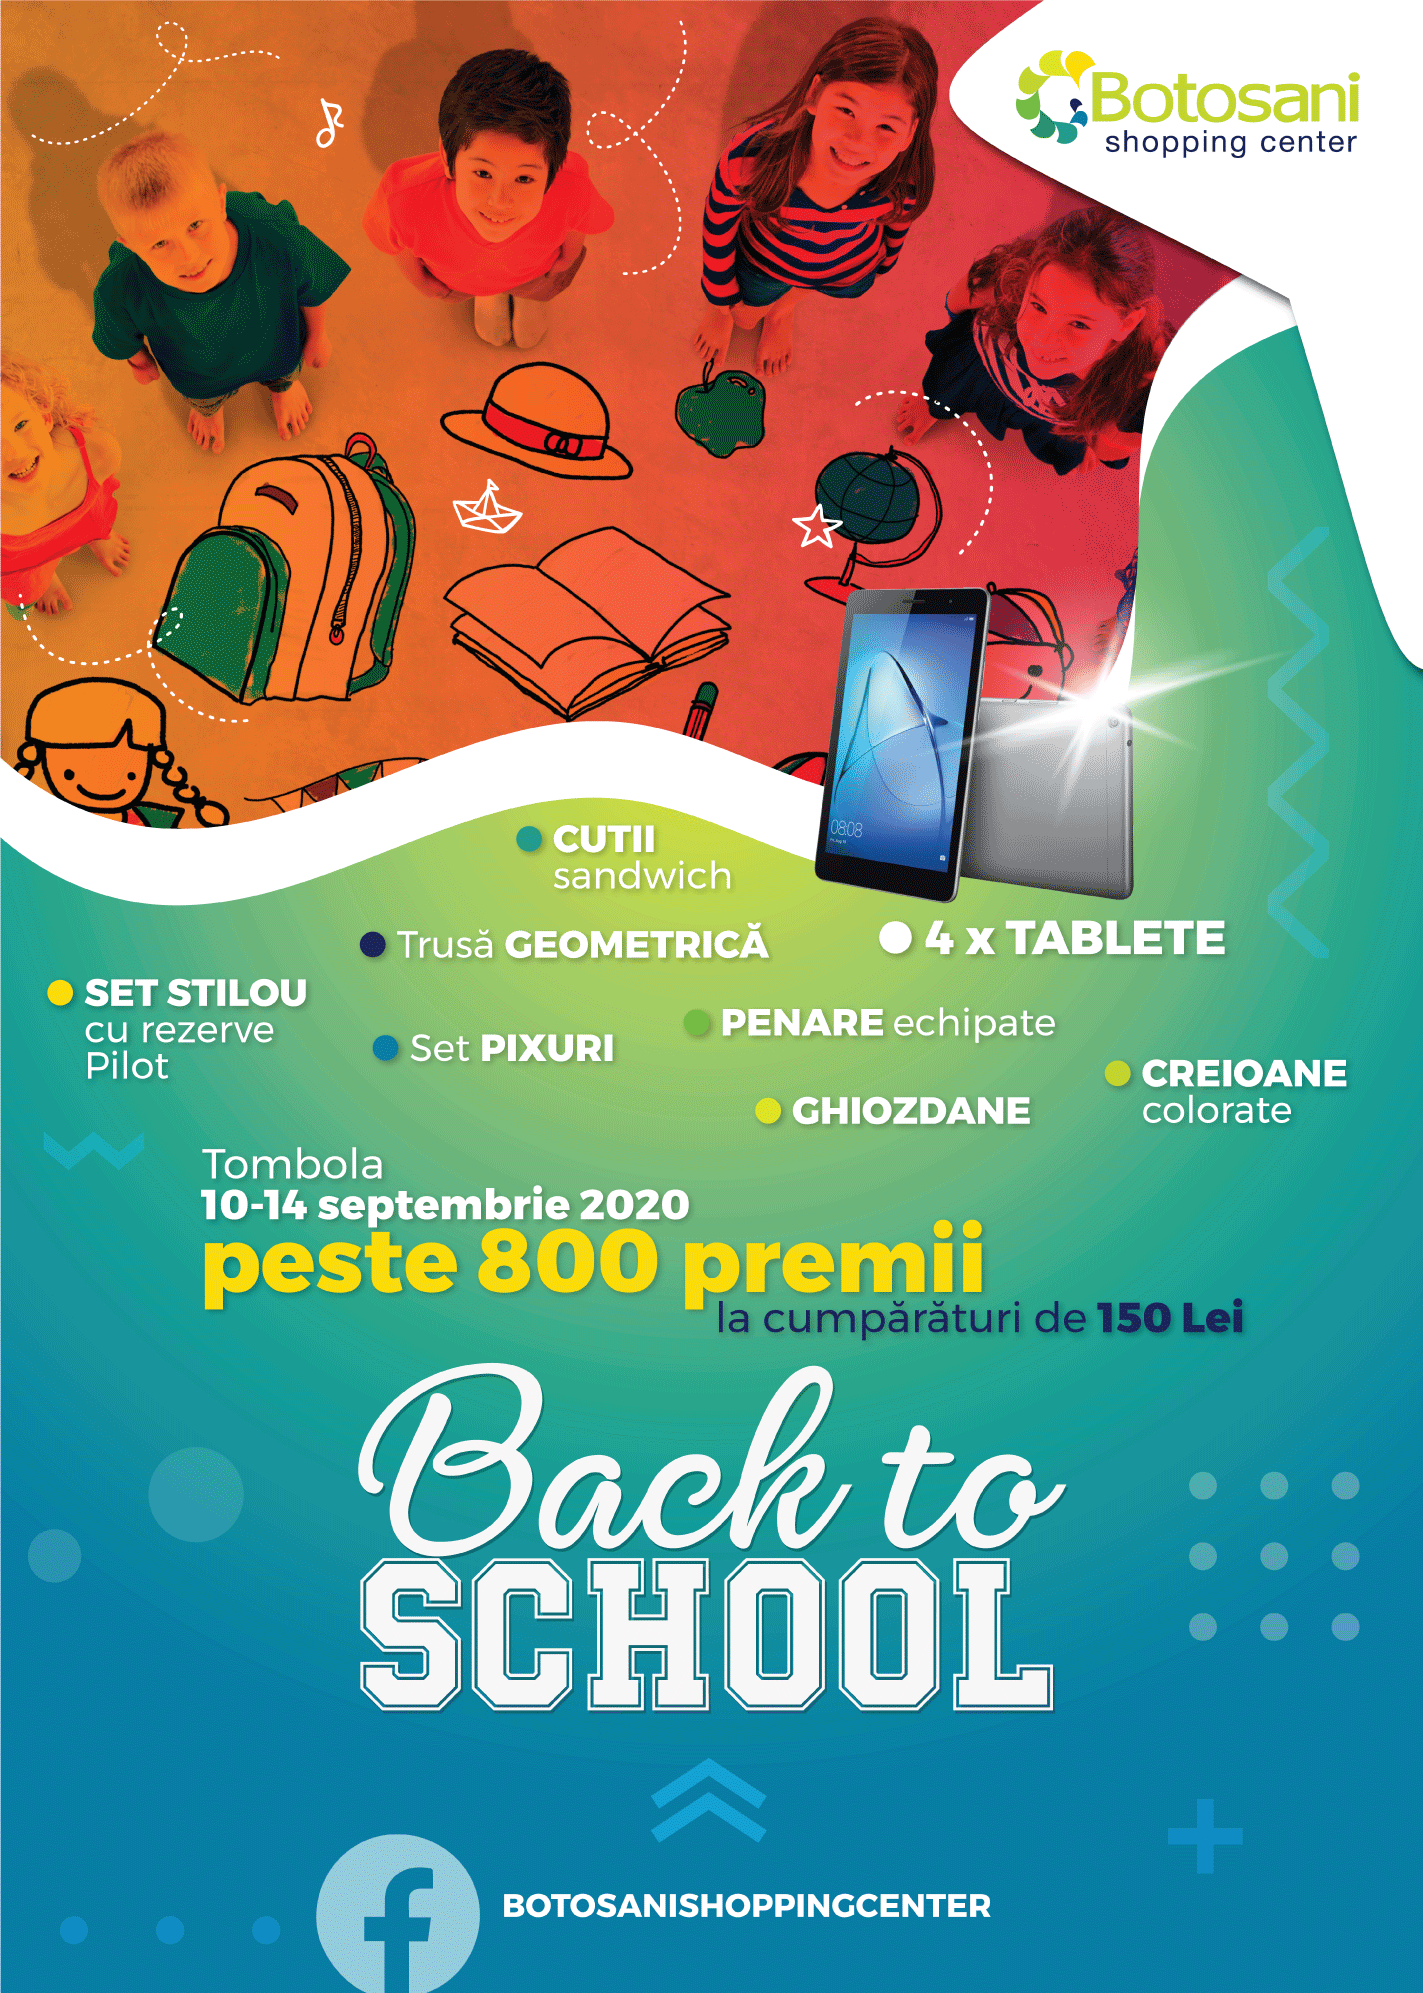 Tombola cu premii : Back to school!